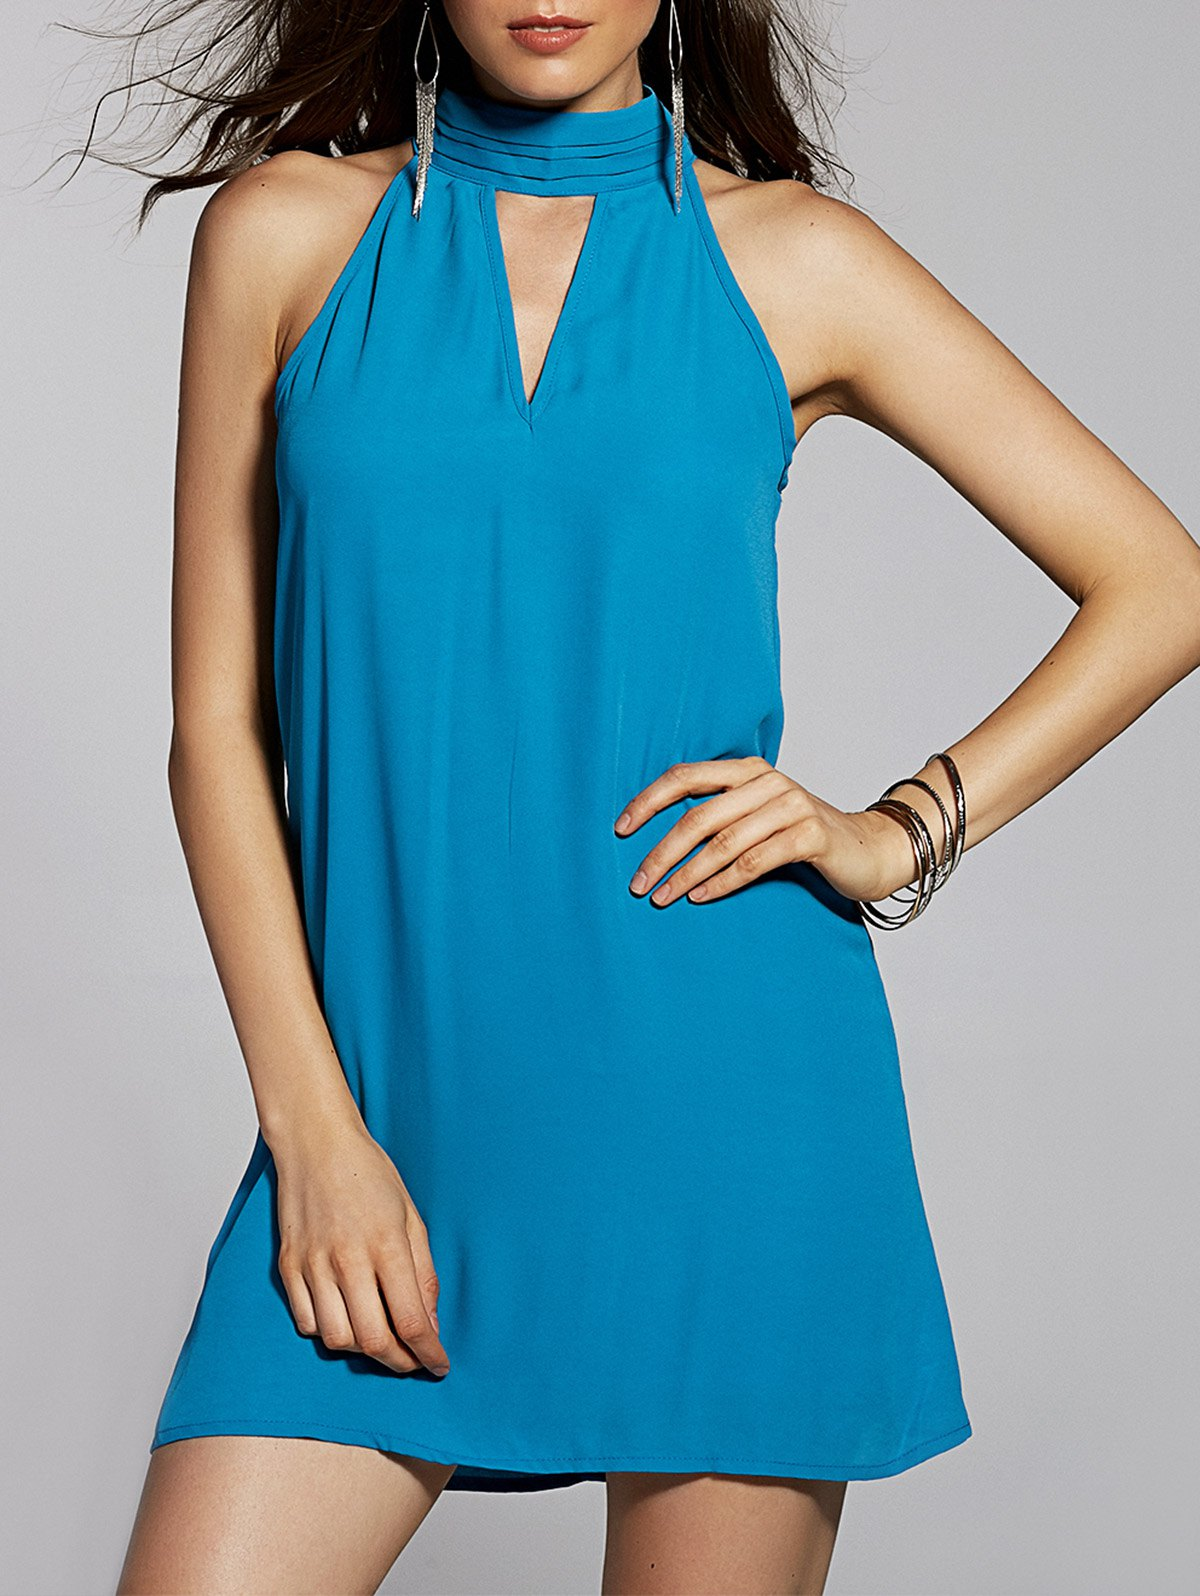 Cut Out Stand Neck Sleeveless Chiffon DressClothes<br><br><br>Size: XL<br>Color: WATER BLUE